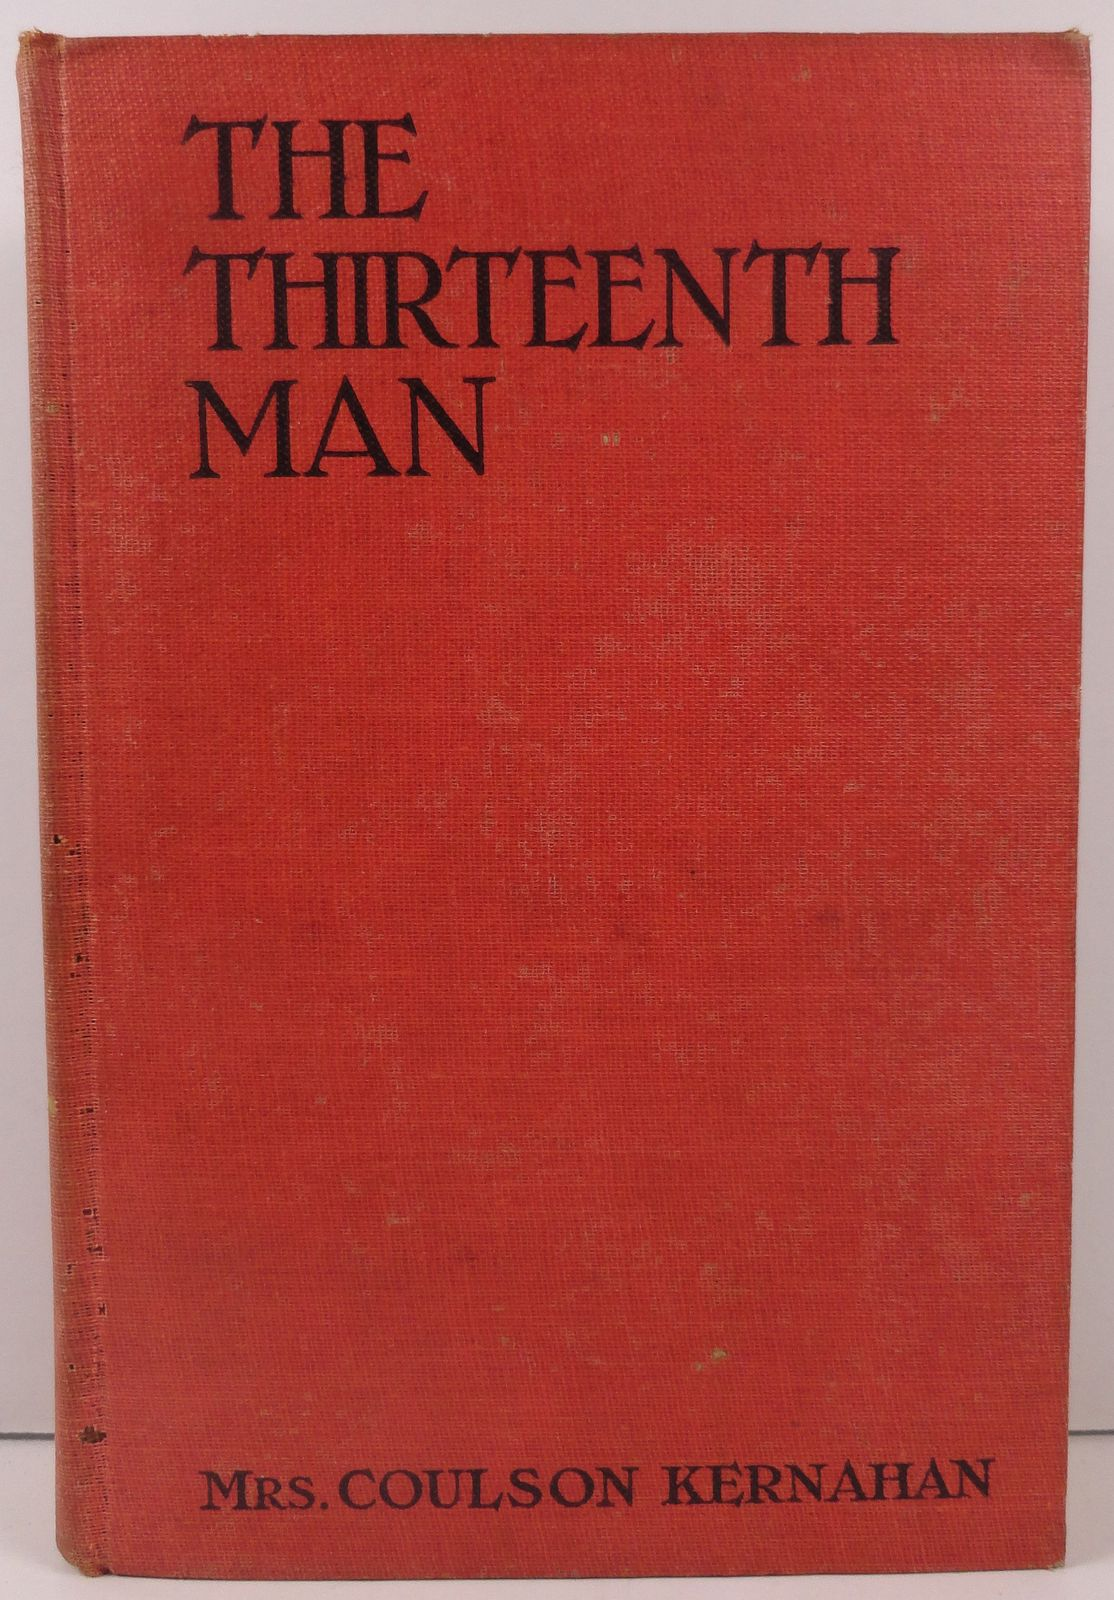 The Thirteenth Man by Mrs. Coulson Kernahan 1910 Dillingham